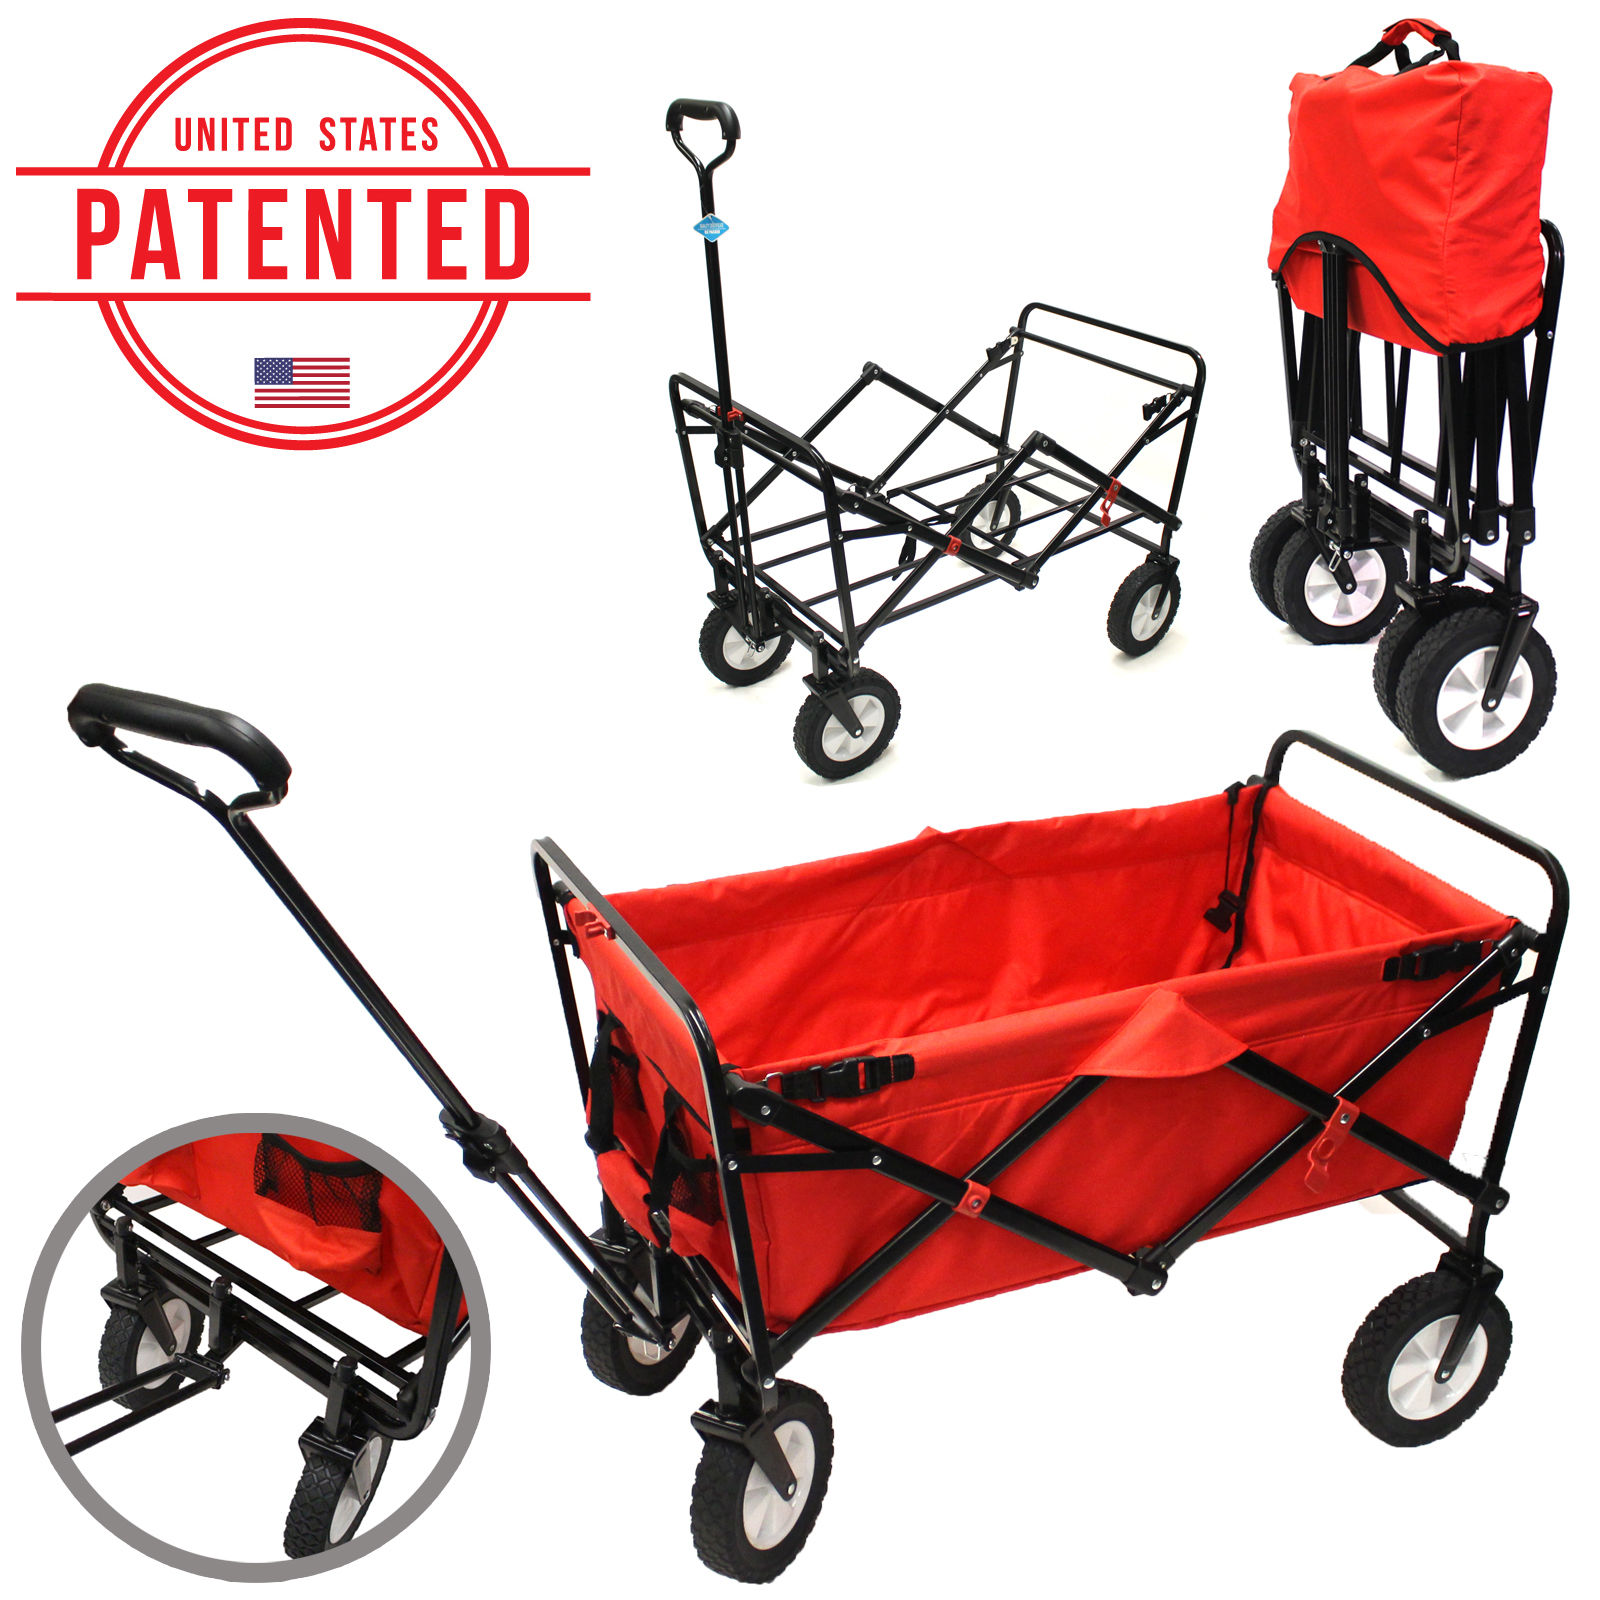 Everyday Sports Folding Collapsible Wagon Garden Utility Shopping Camping Cart